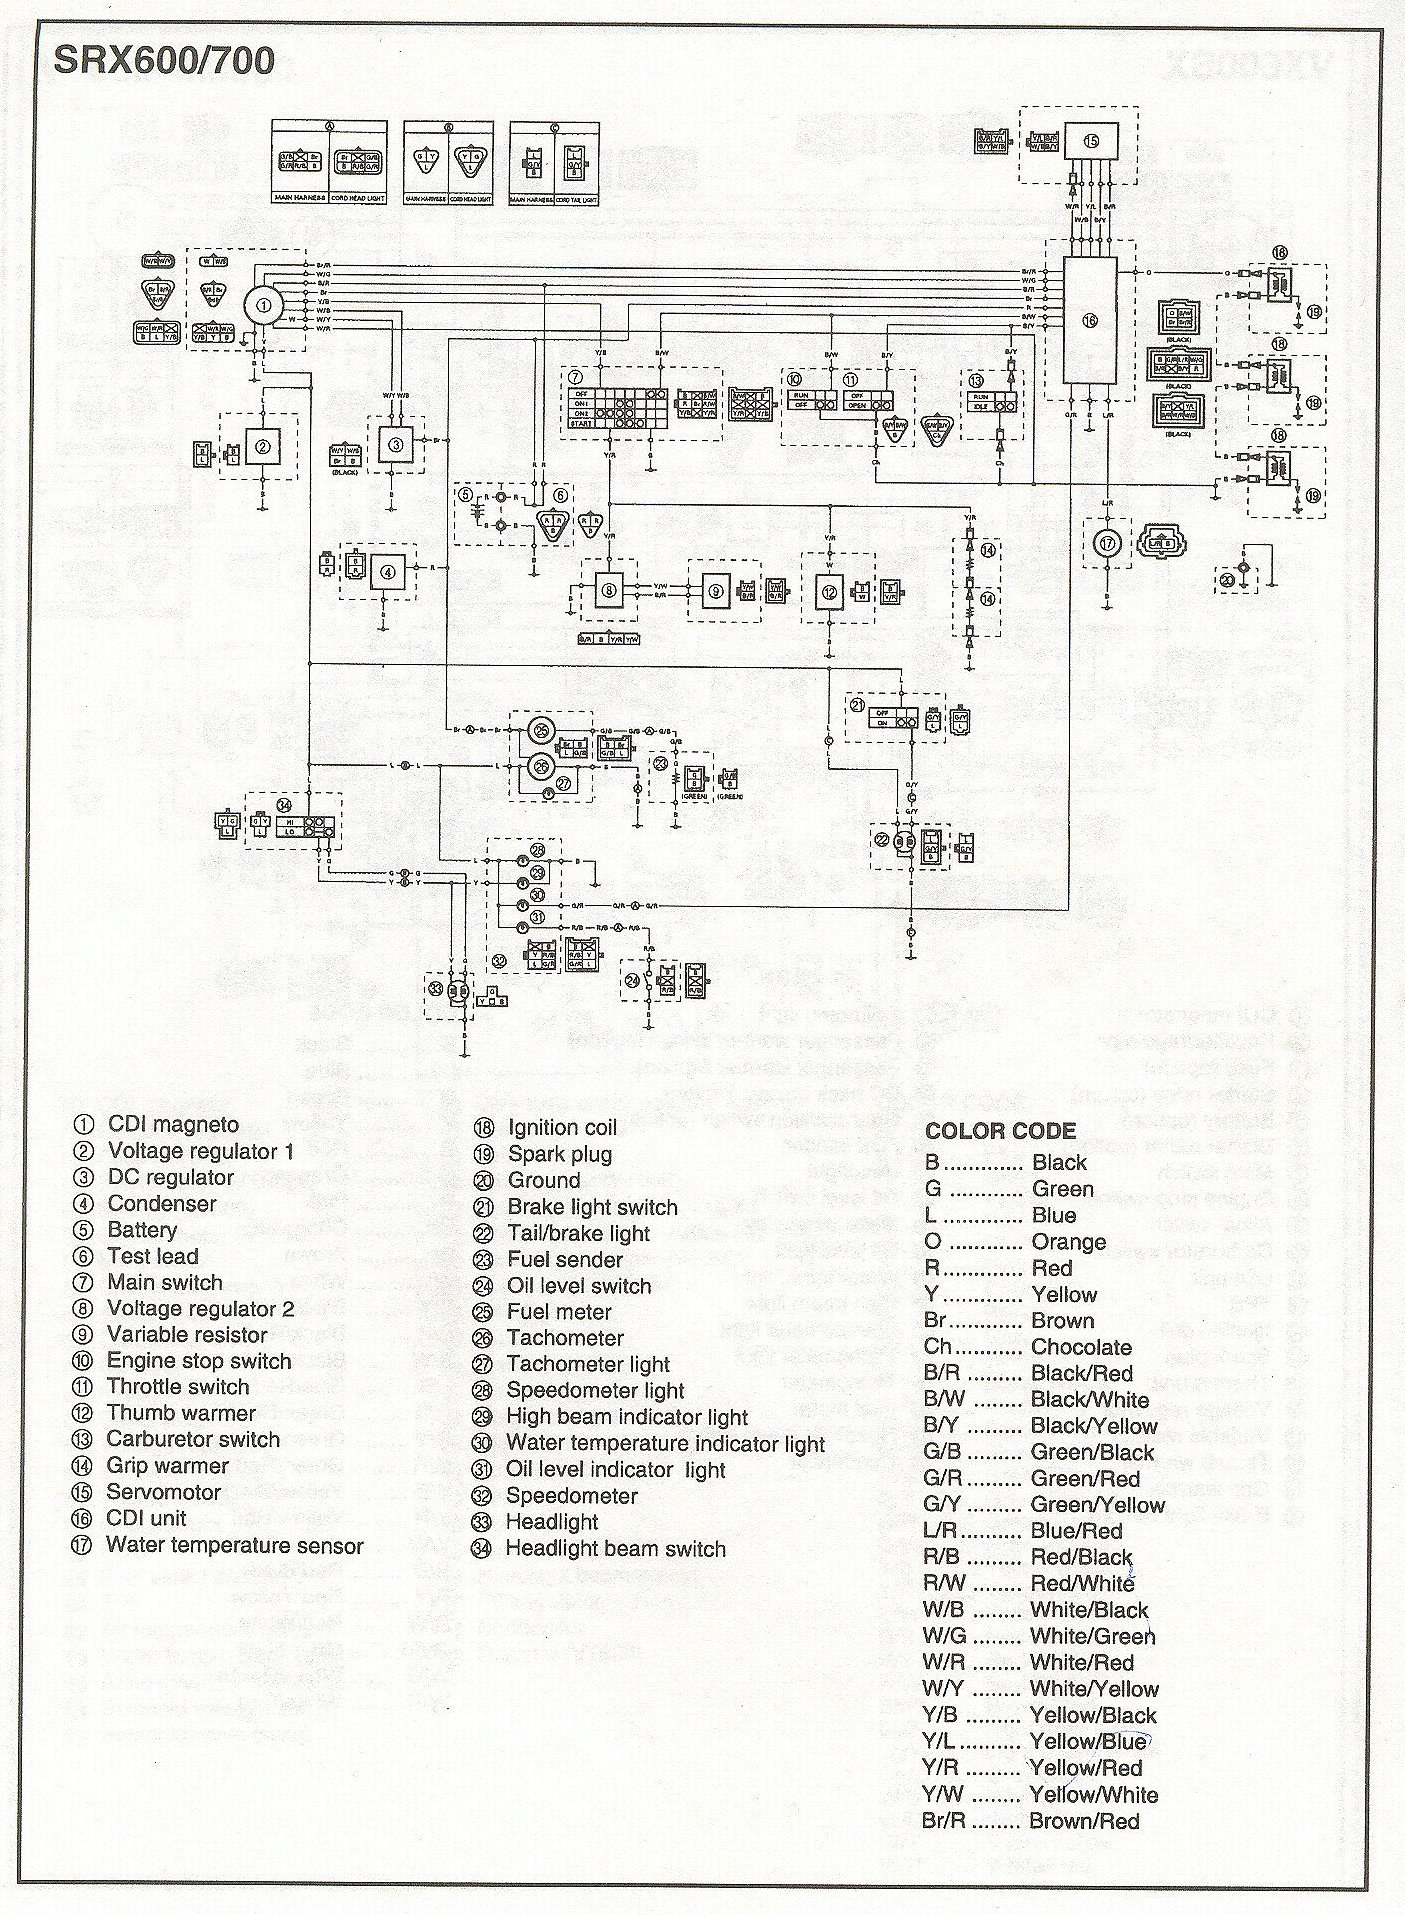 Snowmobile Voltage Regulator Wiring Diagram : Polaris voltage regulator wiring diagram get free image